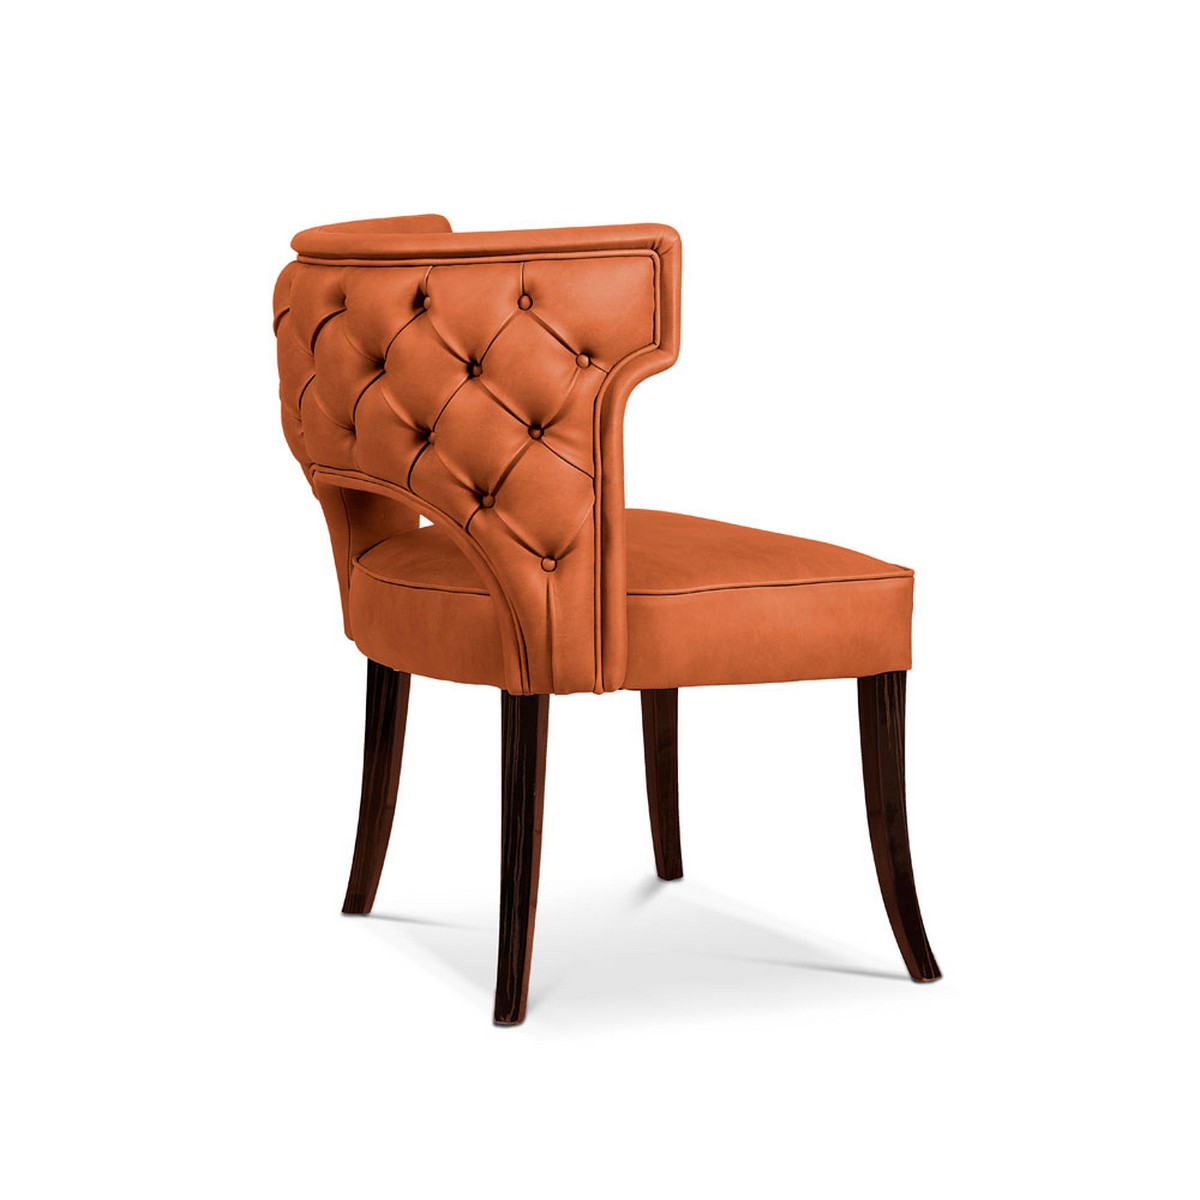 Top Exclusive Dining Chairs exclusive dining chairs Top Exclusive Dining Chairs kansas1 exclusive dining chairs Top Exclusive Dining Chairs kansas1